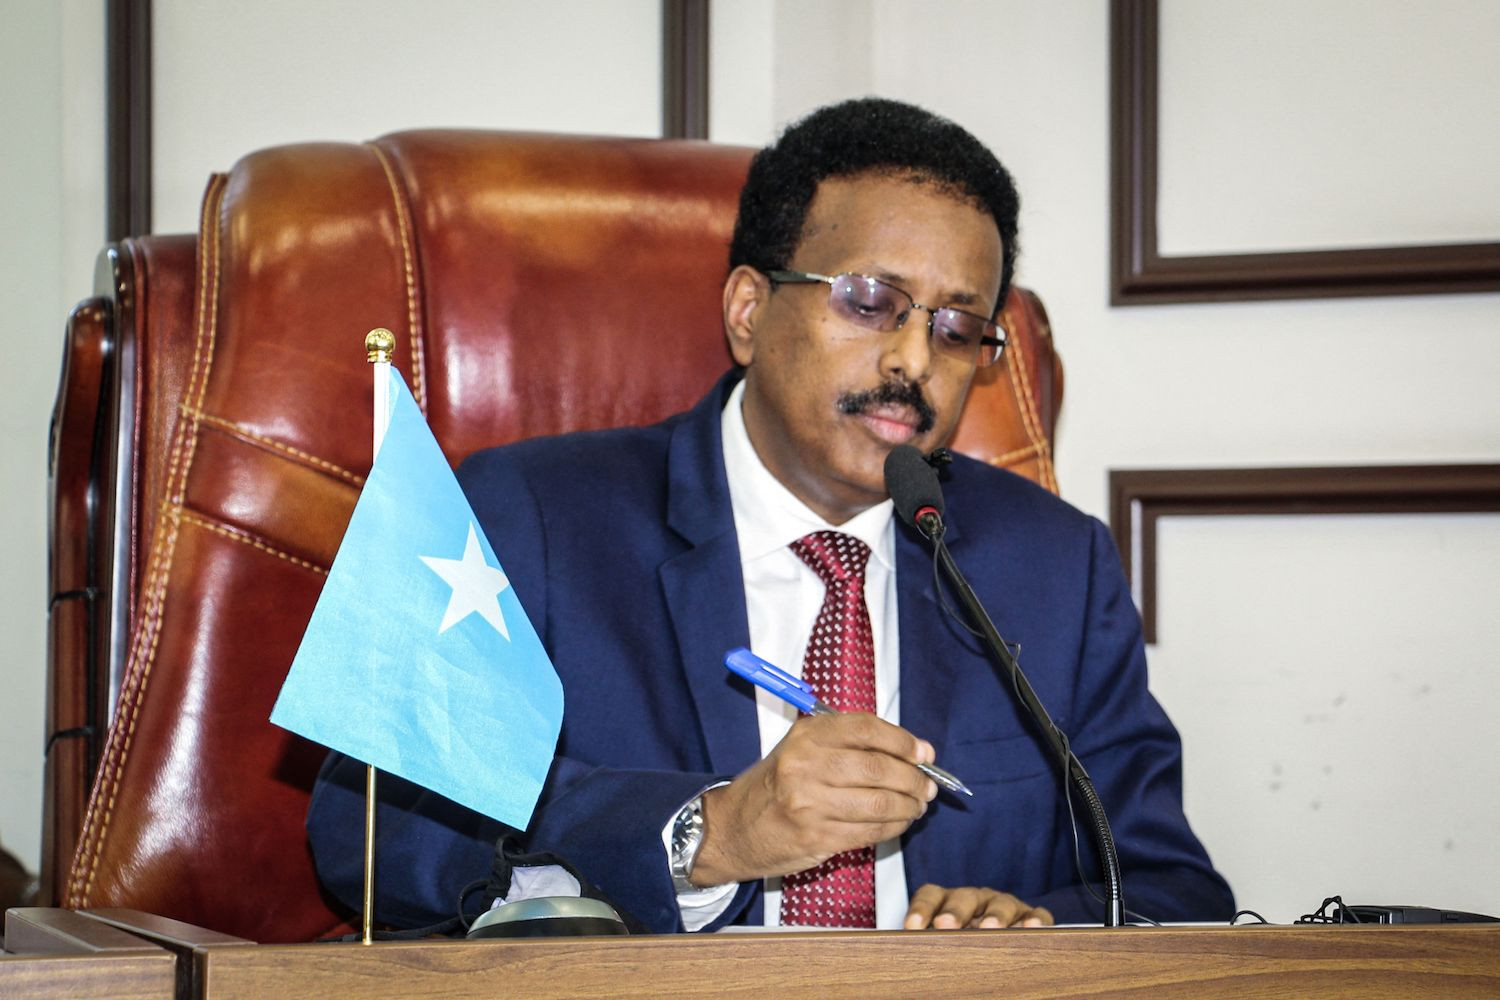 Somalia's President Mohamed Abdullahi Mohamed, commonly known by his nickname of Farmajo, attends the special assembly for abandoning the two-year extension of his presidential term at Villa Hargeisa in Mogadishu on May 1. AFP VIA GETTY IMAGES